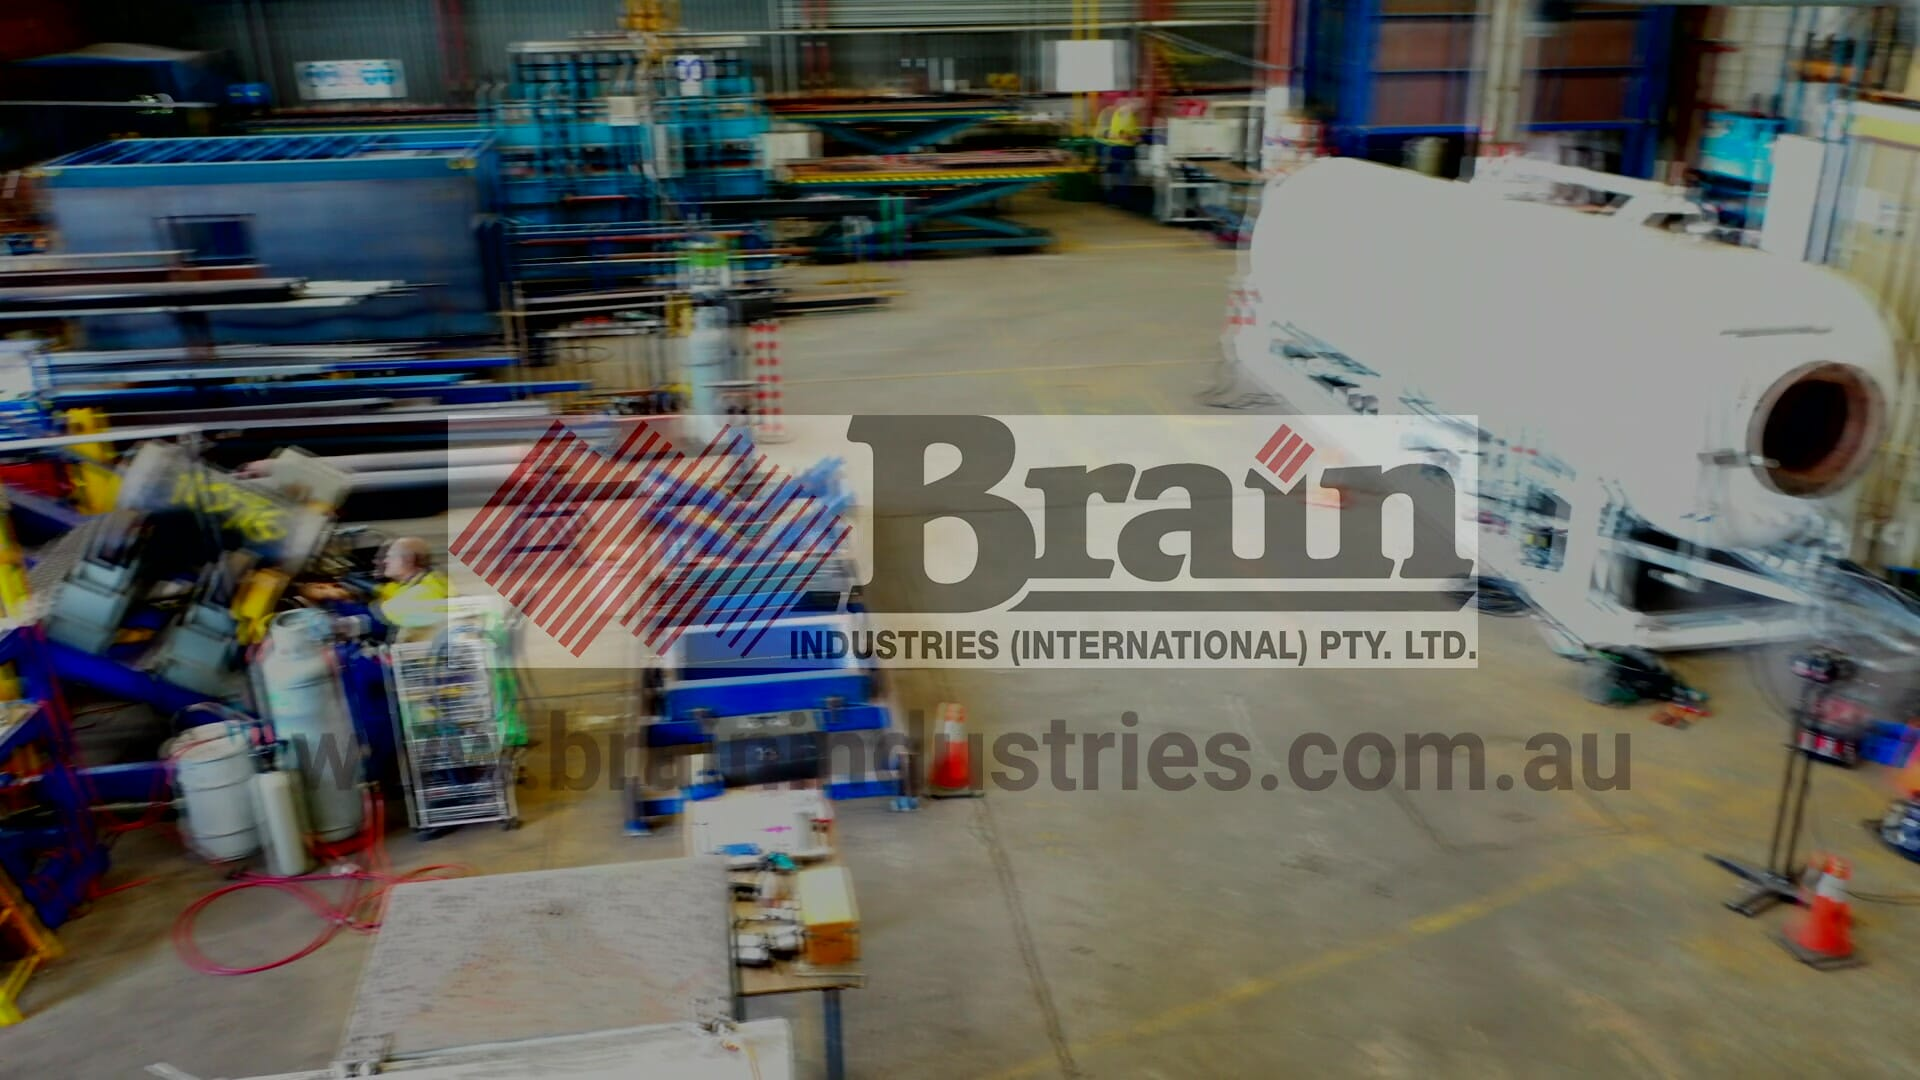 Brain Industries manufacturing and equipment service centre in Newcastle